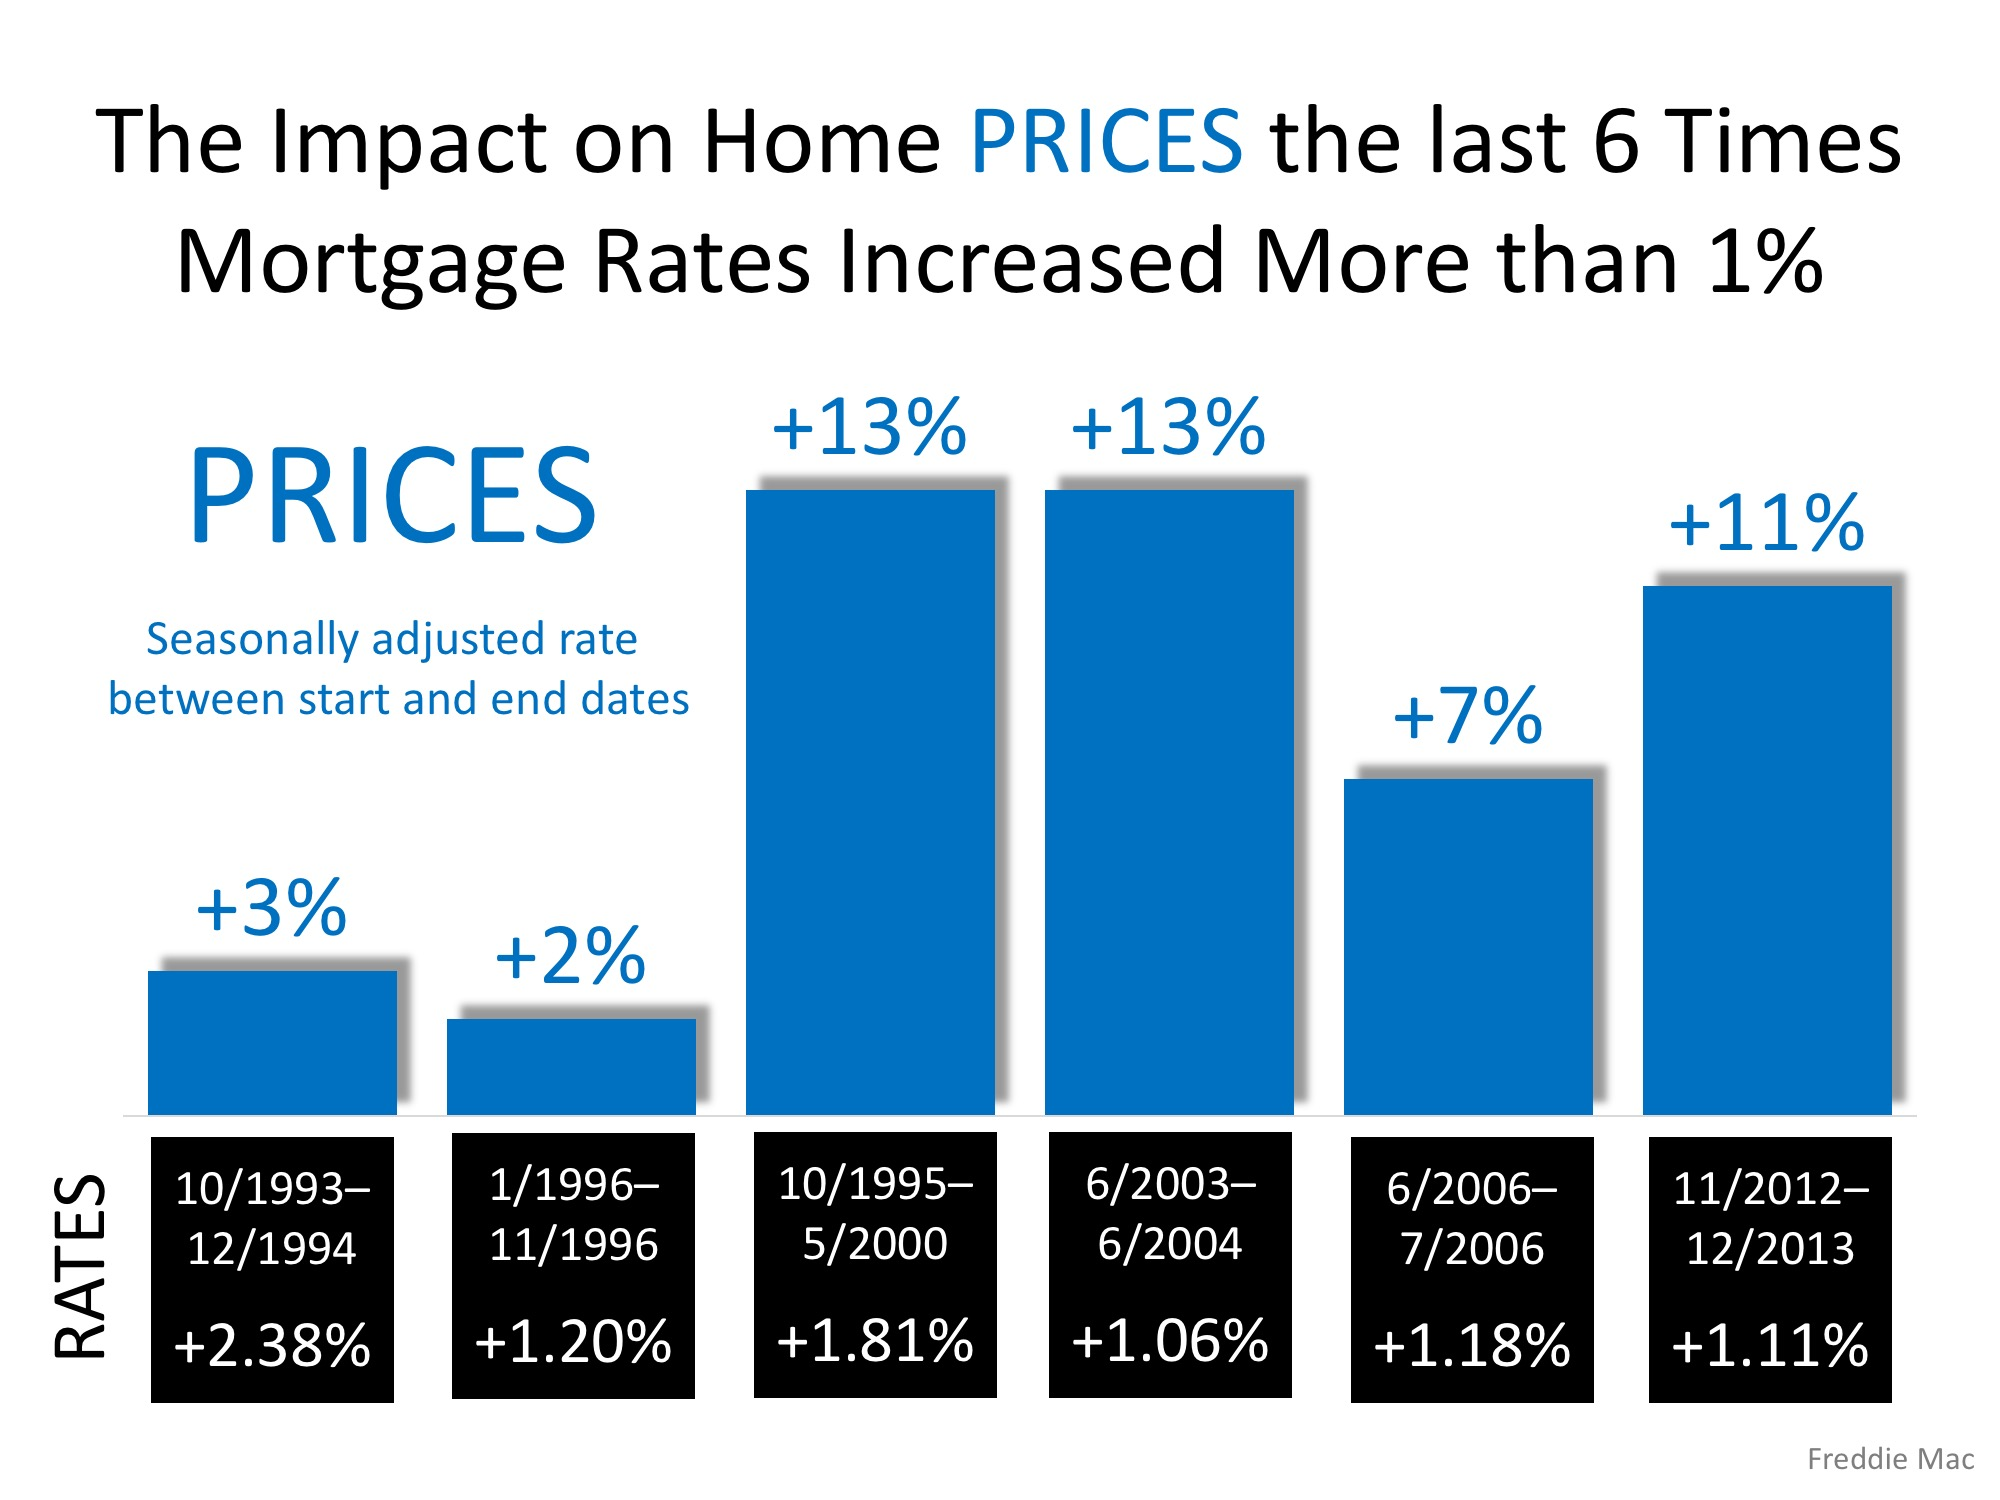 Impact of Mortage Rates on Home Prices